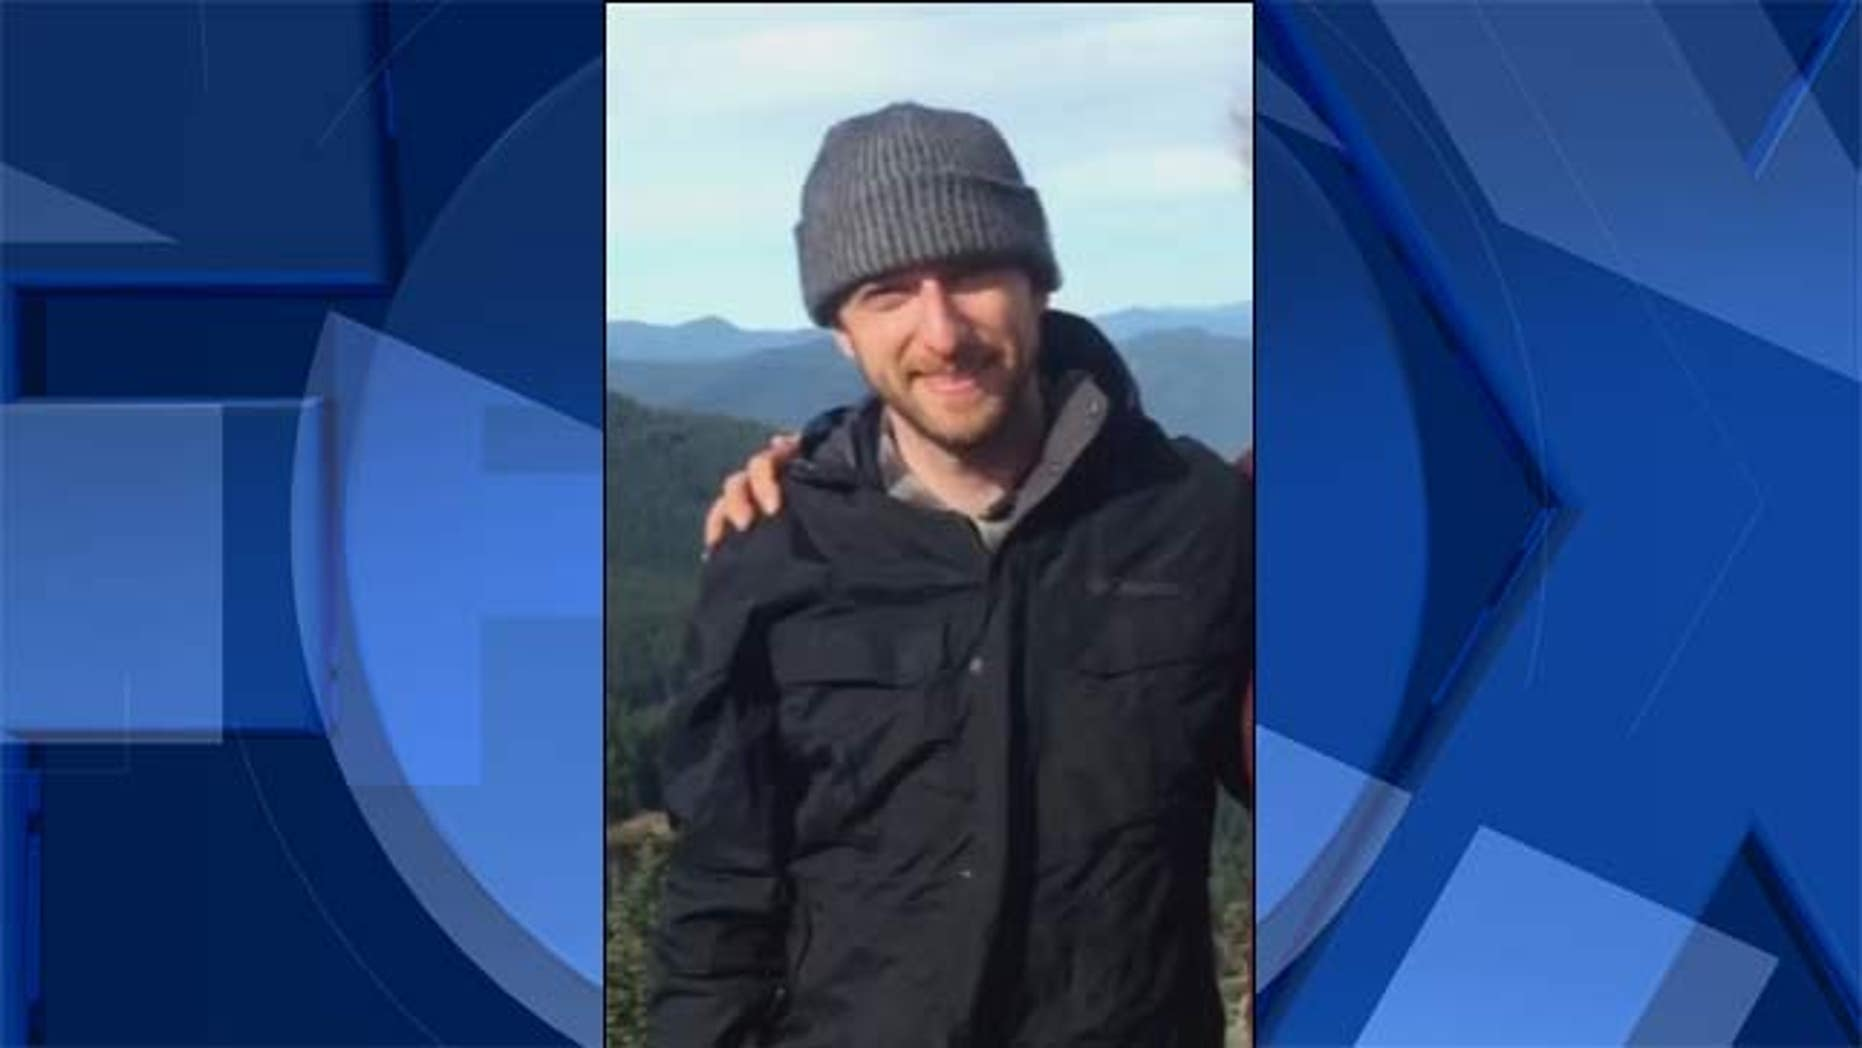 A hiker from Portland, 34-year-old Nathan Mitchell, was found alive Thursday in the Mount Hood National Forest.